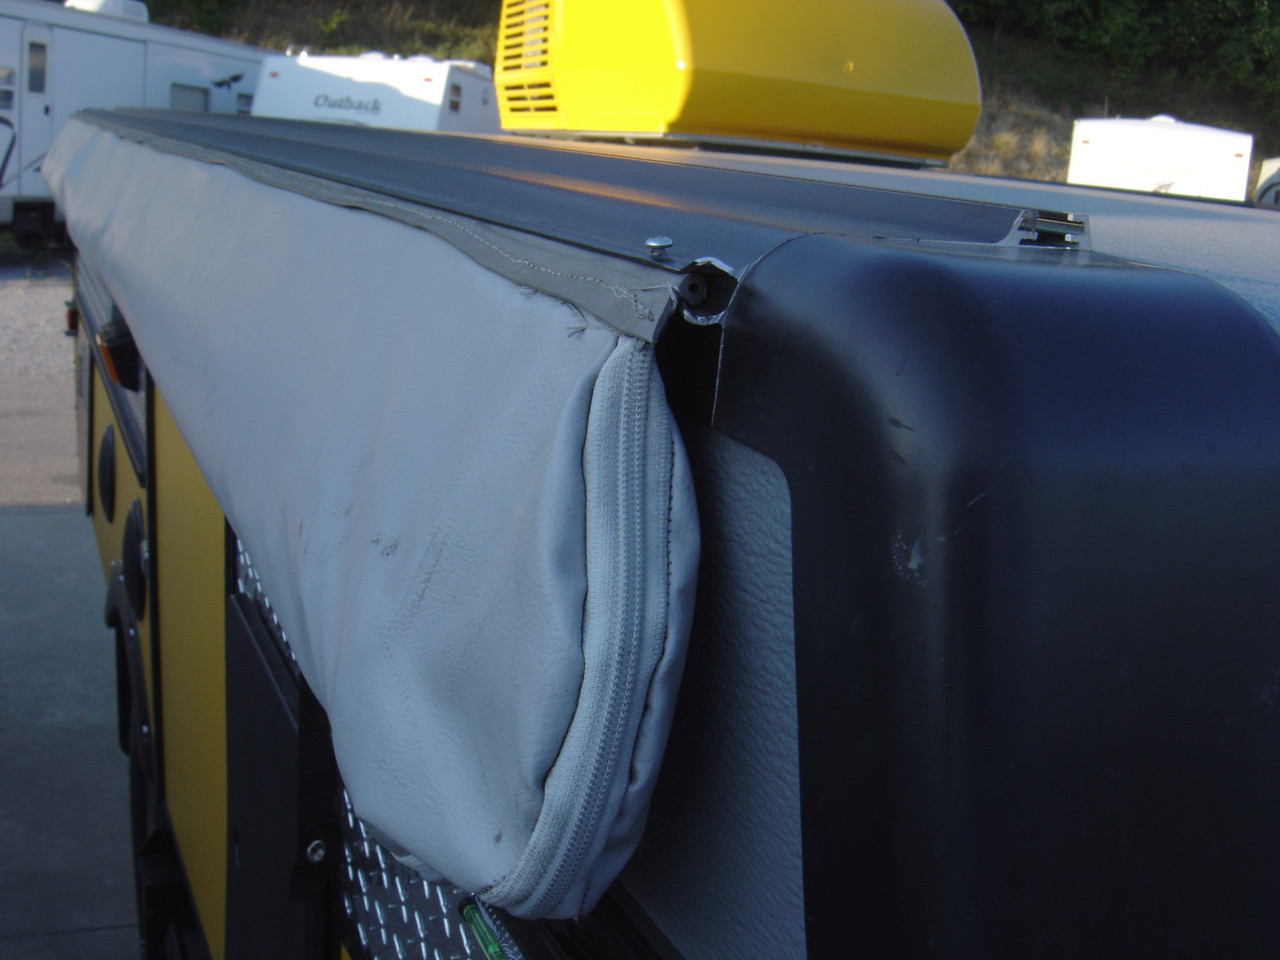 """The awning is secured to the """"C"""" channel by two screws at each end. The screws must go through the rubber as seen above."""